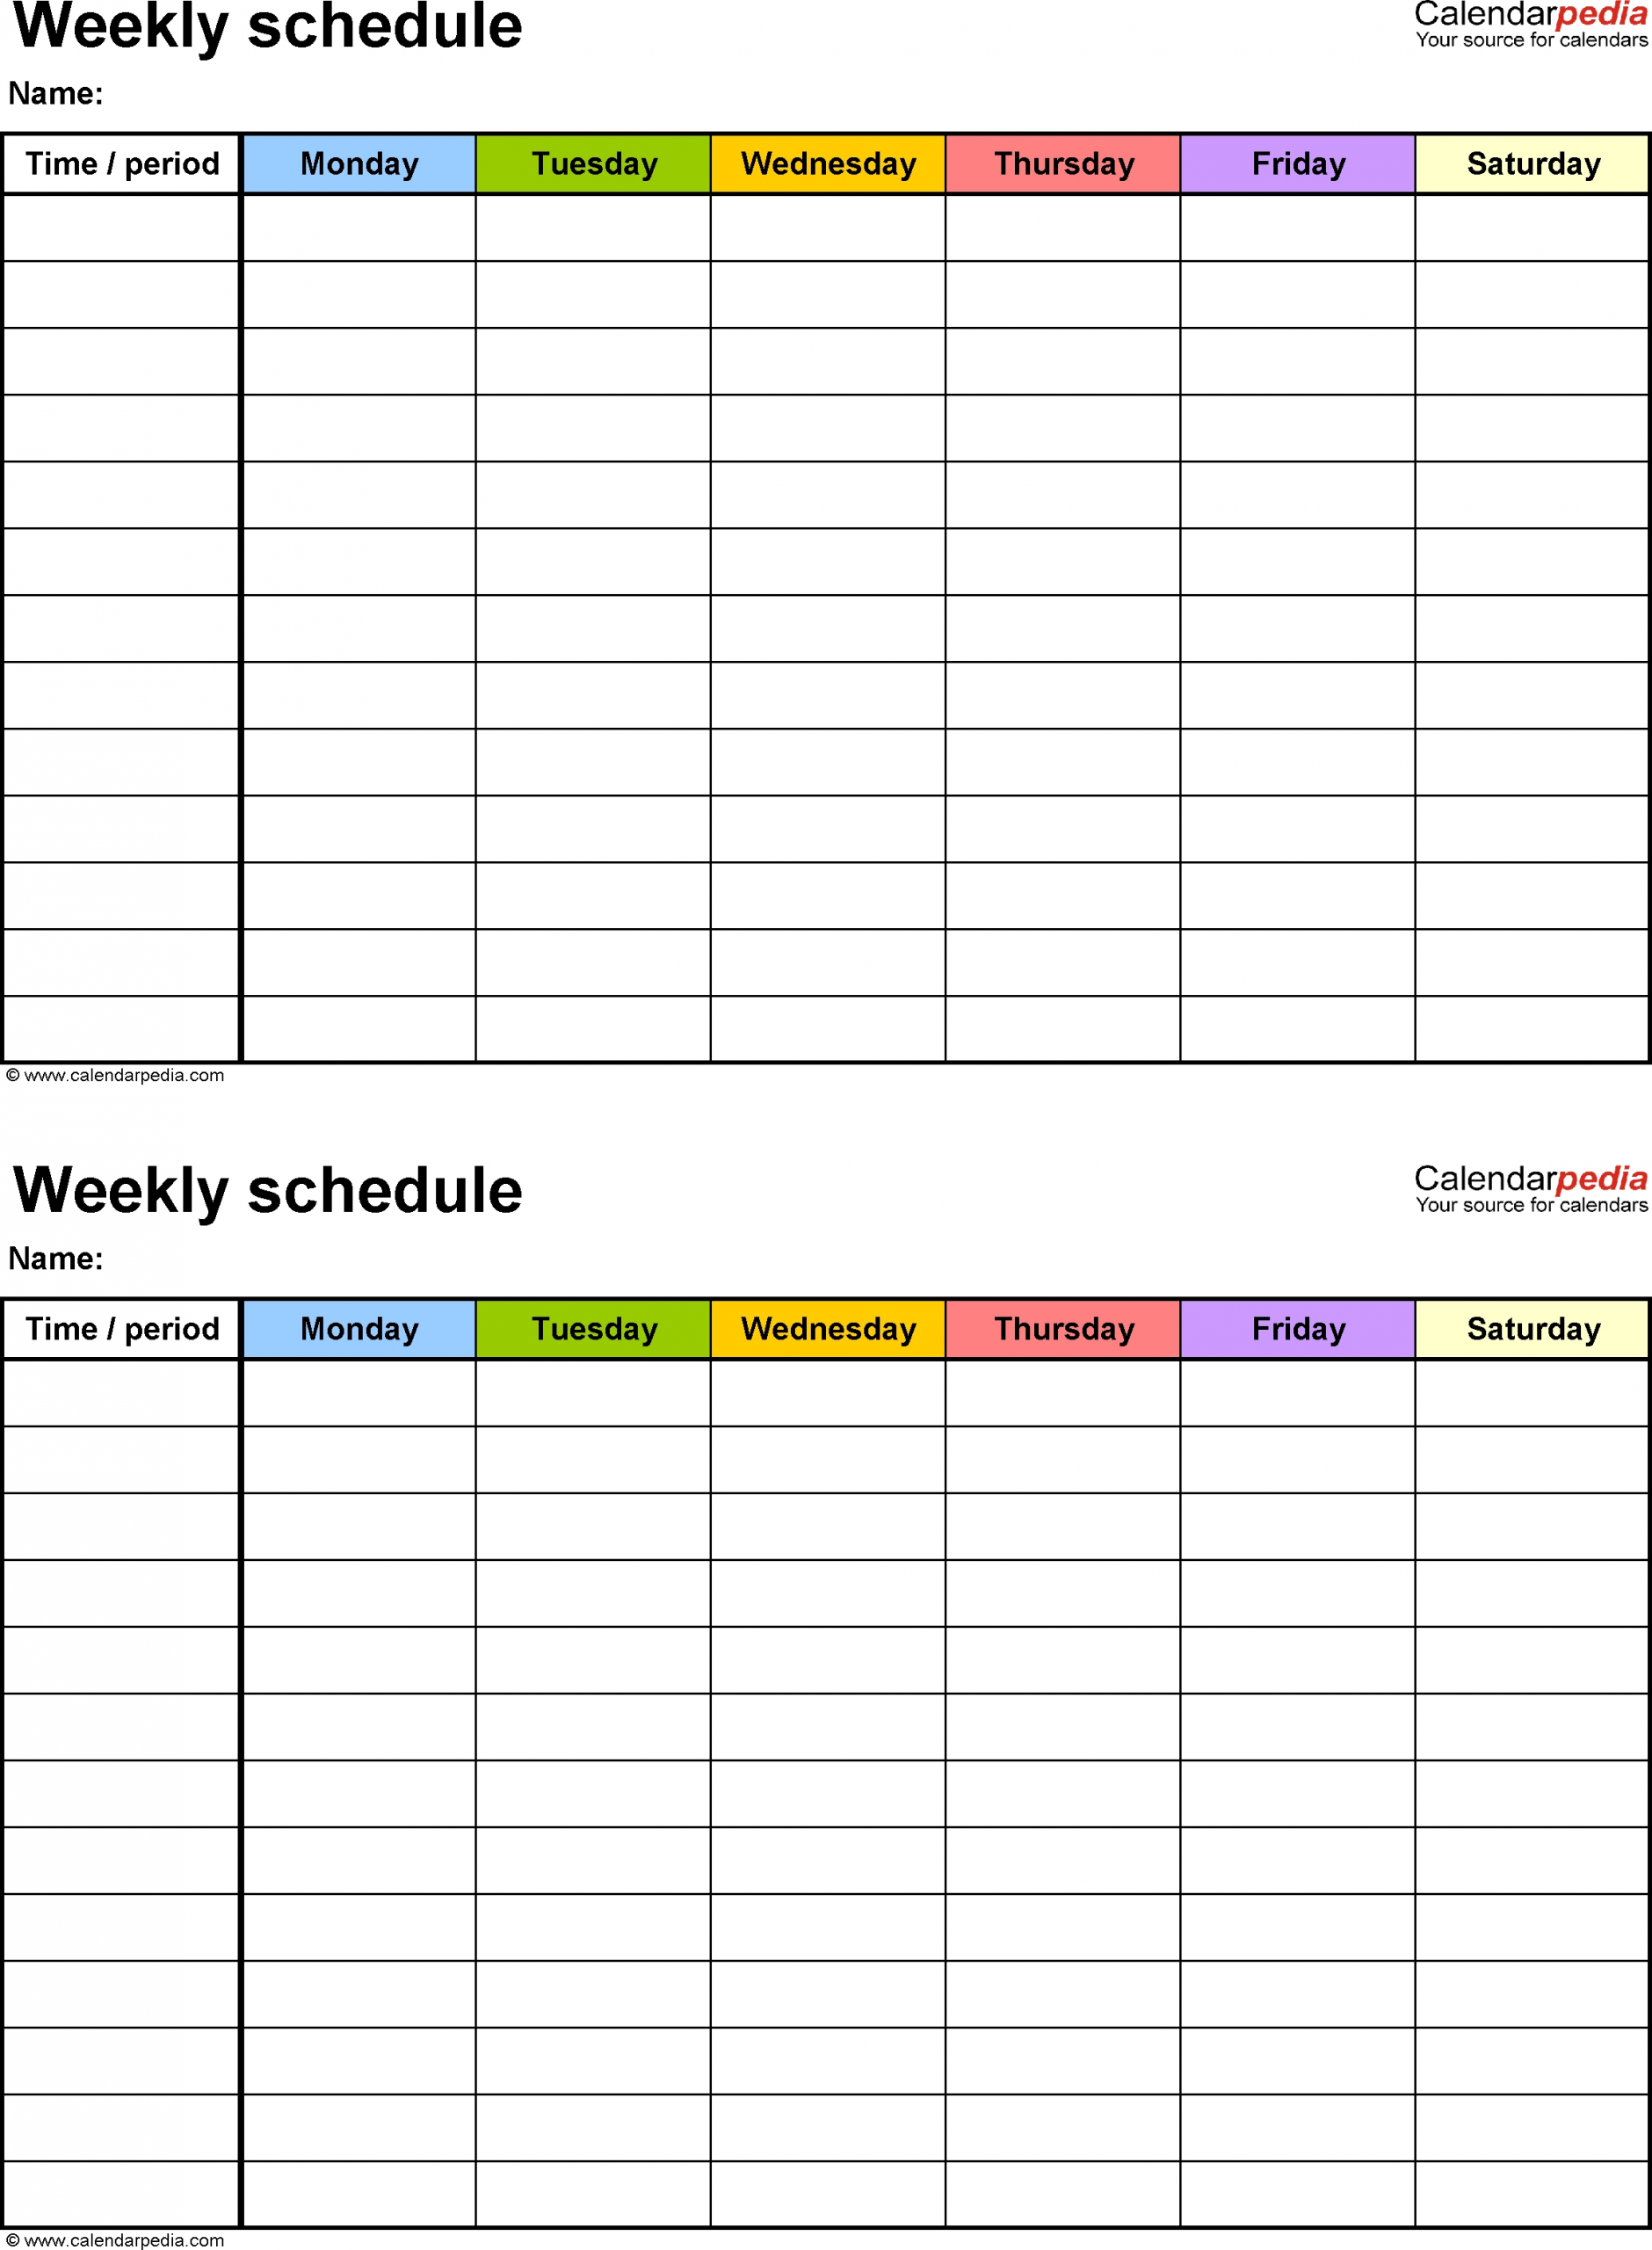 Printable Weekly Schedule Monday Through Friday - Calendar Printable Monday To Friday Timetable